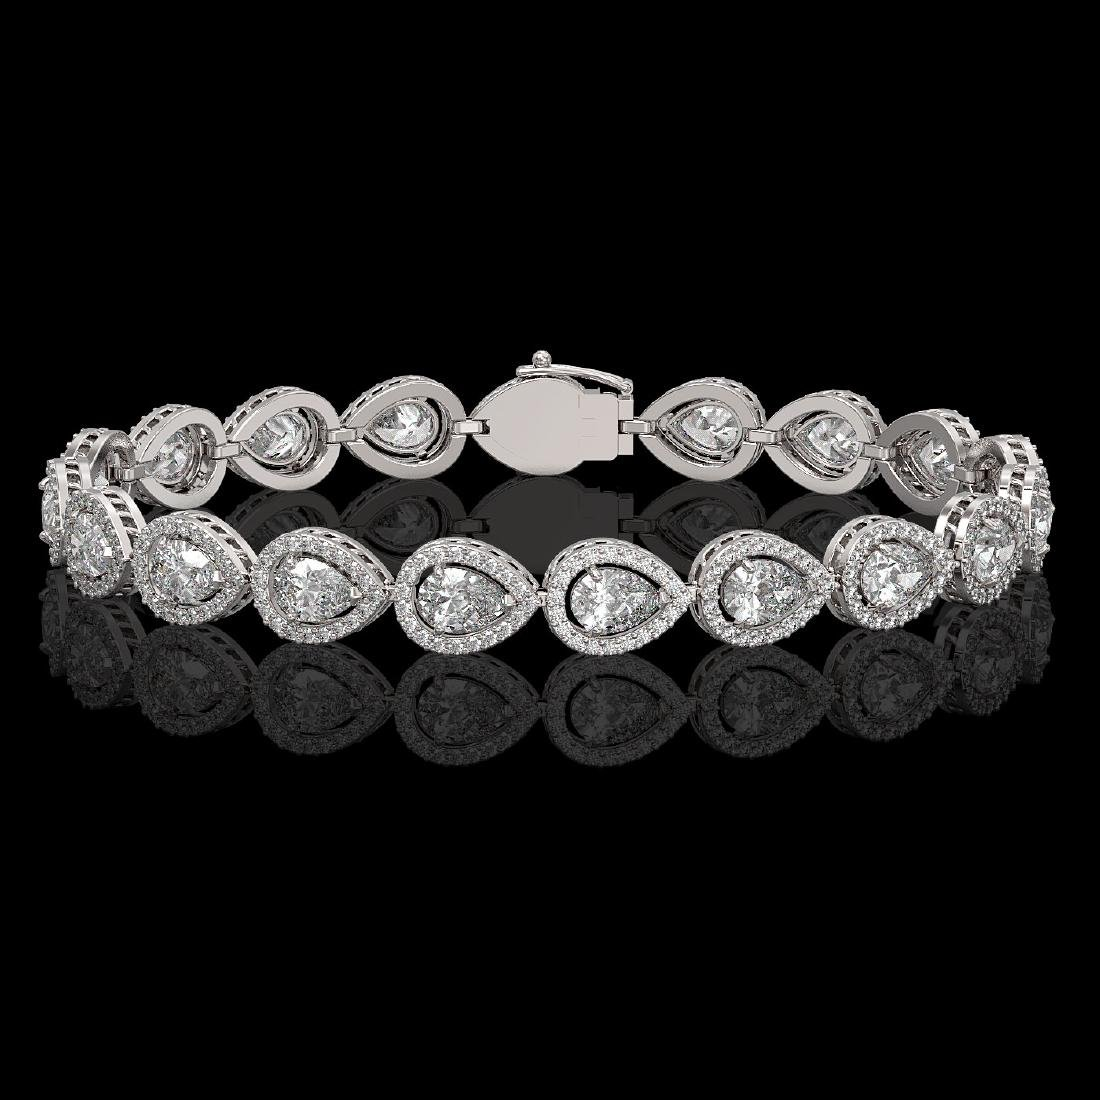 12.38 CTW Pear Diamond Designer Bracelet 18K White Gold